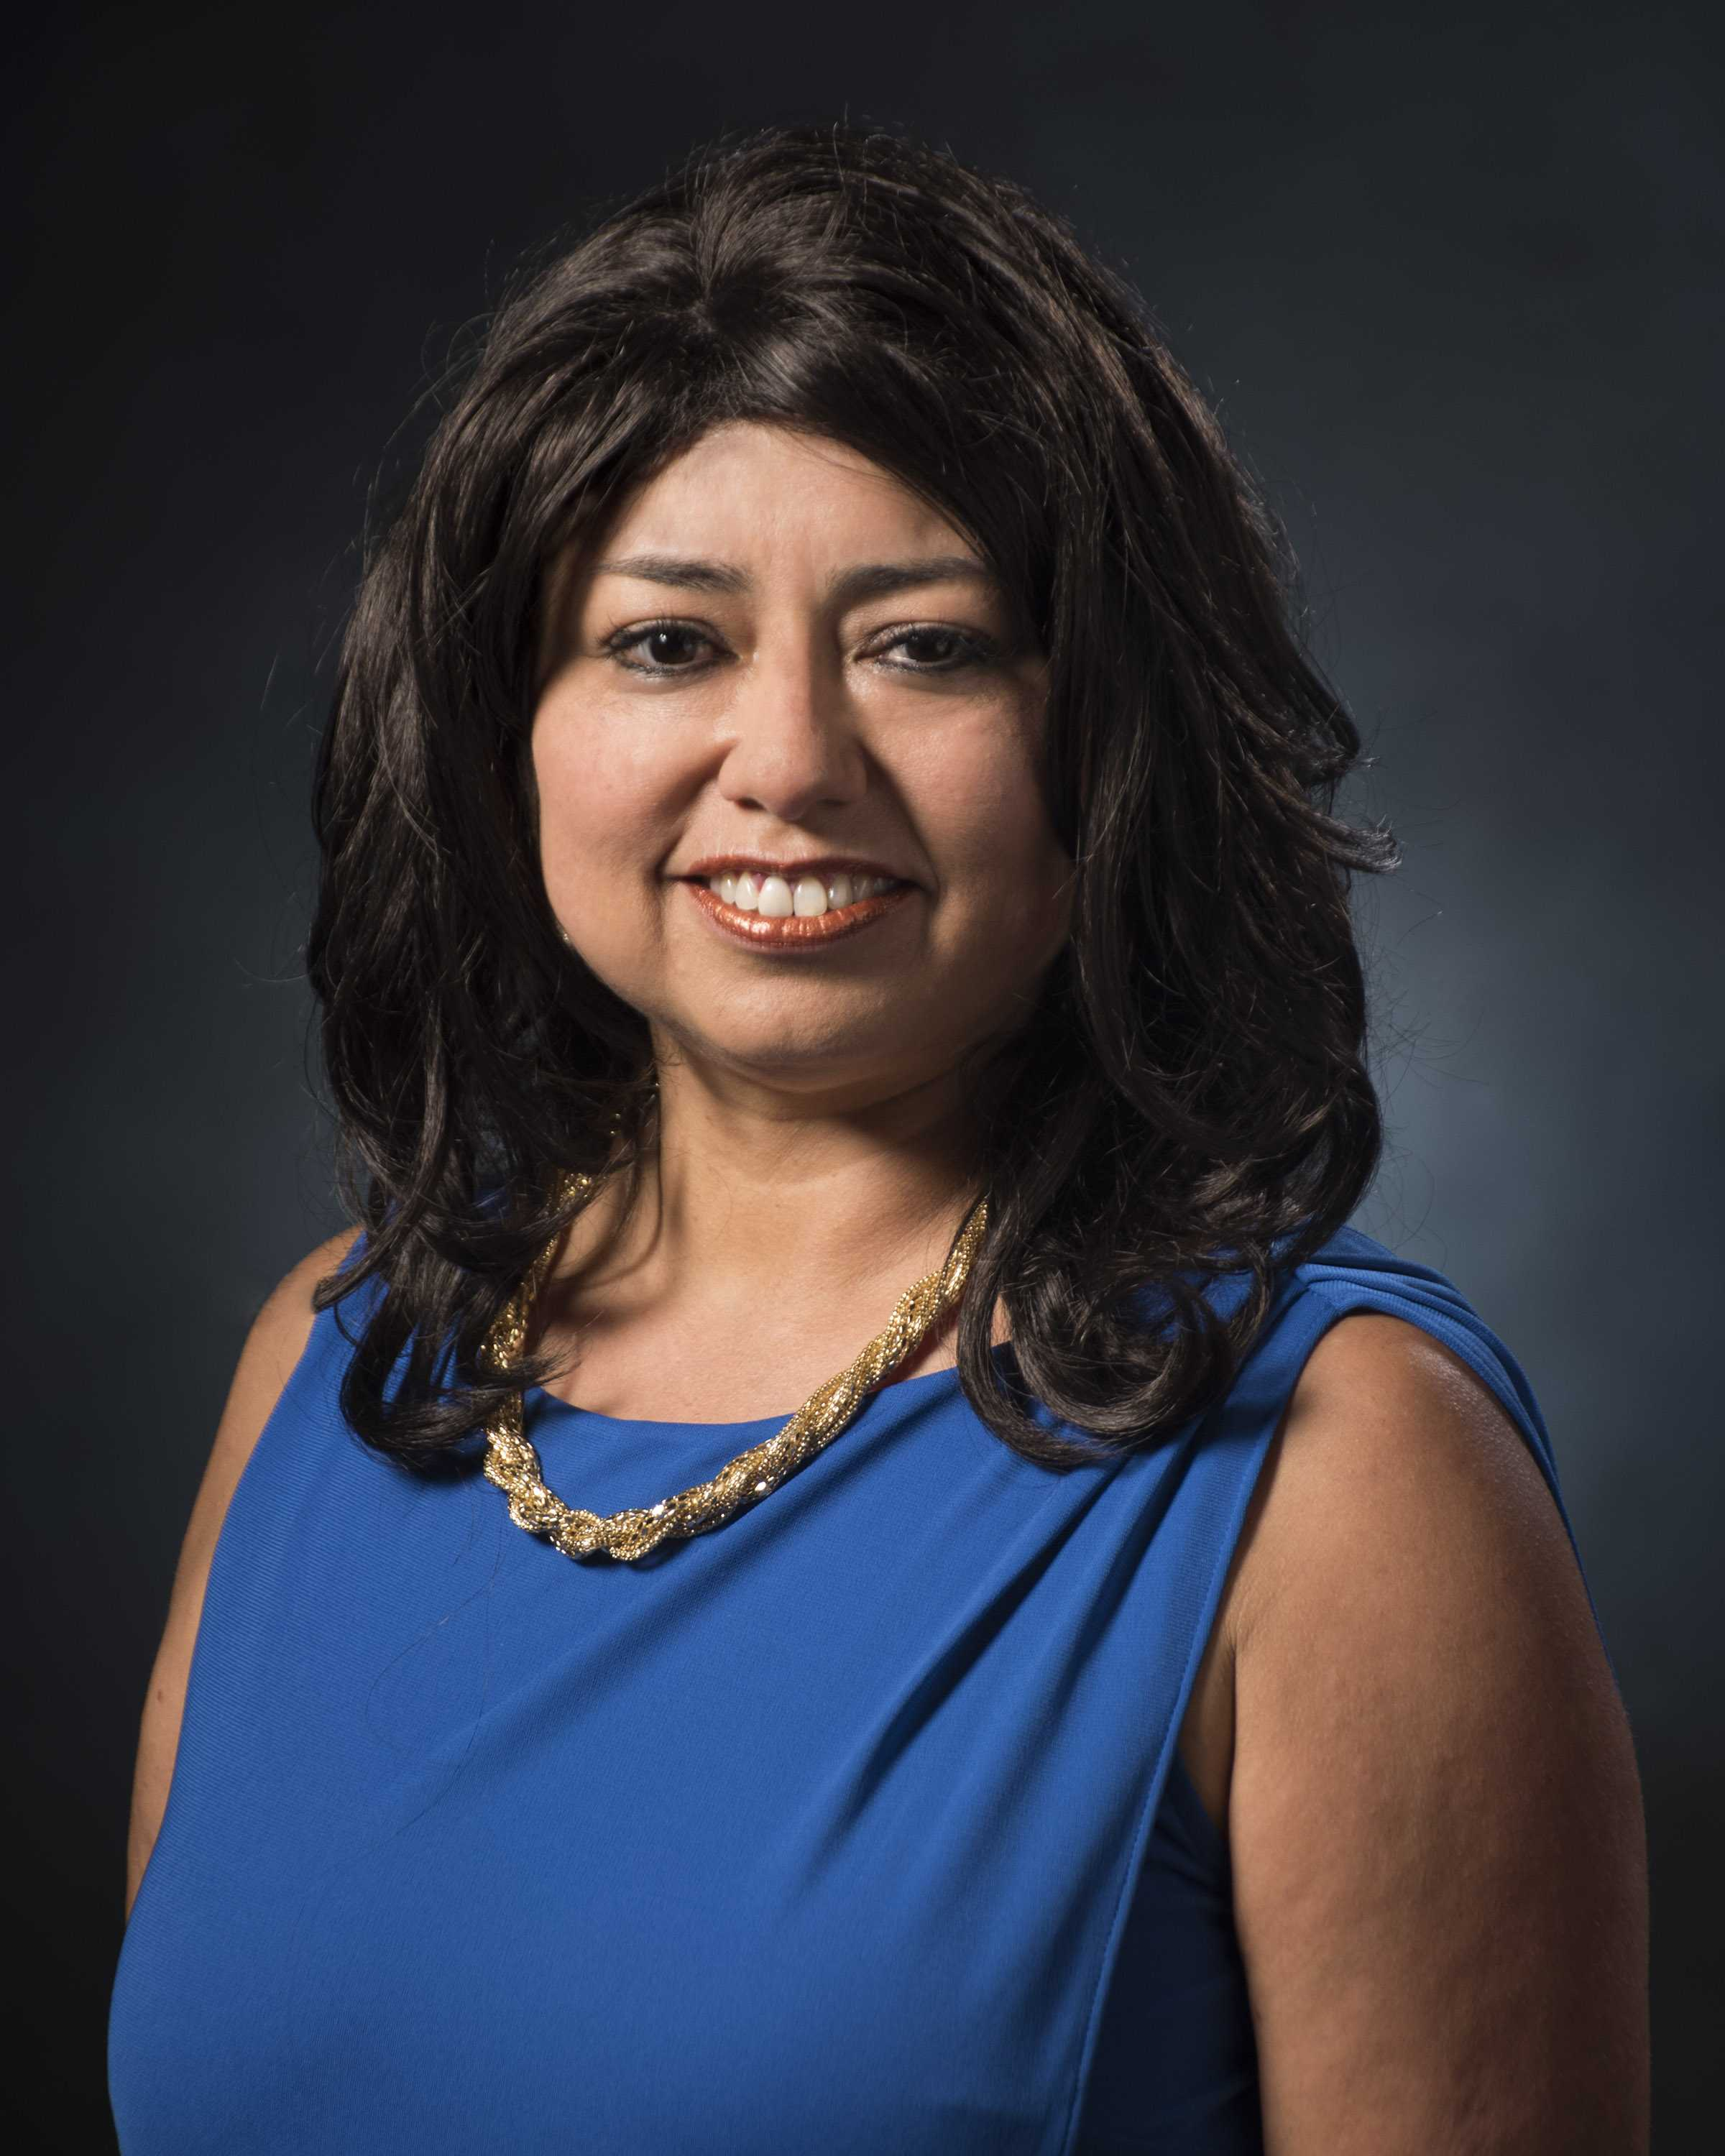 The Rampage has learned that Monica Cuevas, Dean of Counseling, has been reprimanded, according to a management memo sent to the Board of Trustees on Jan. 6, 2016.